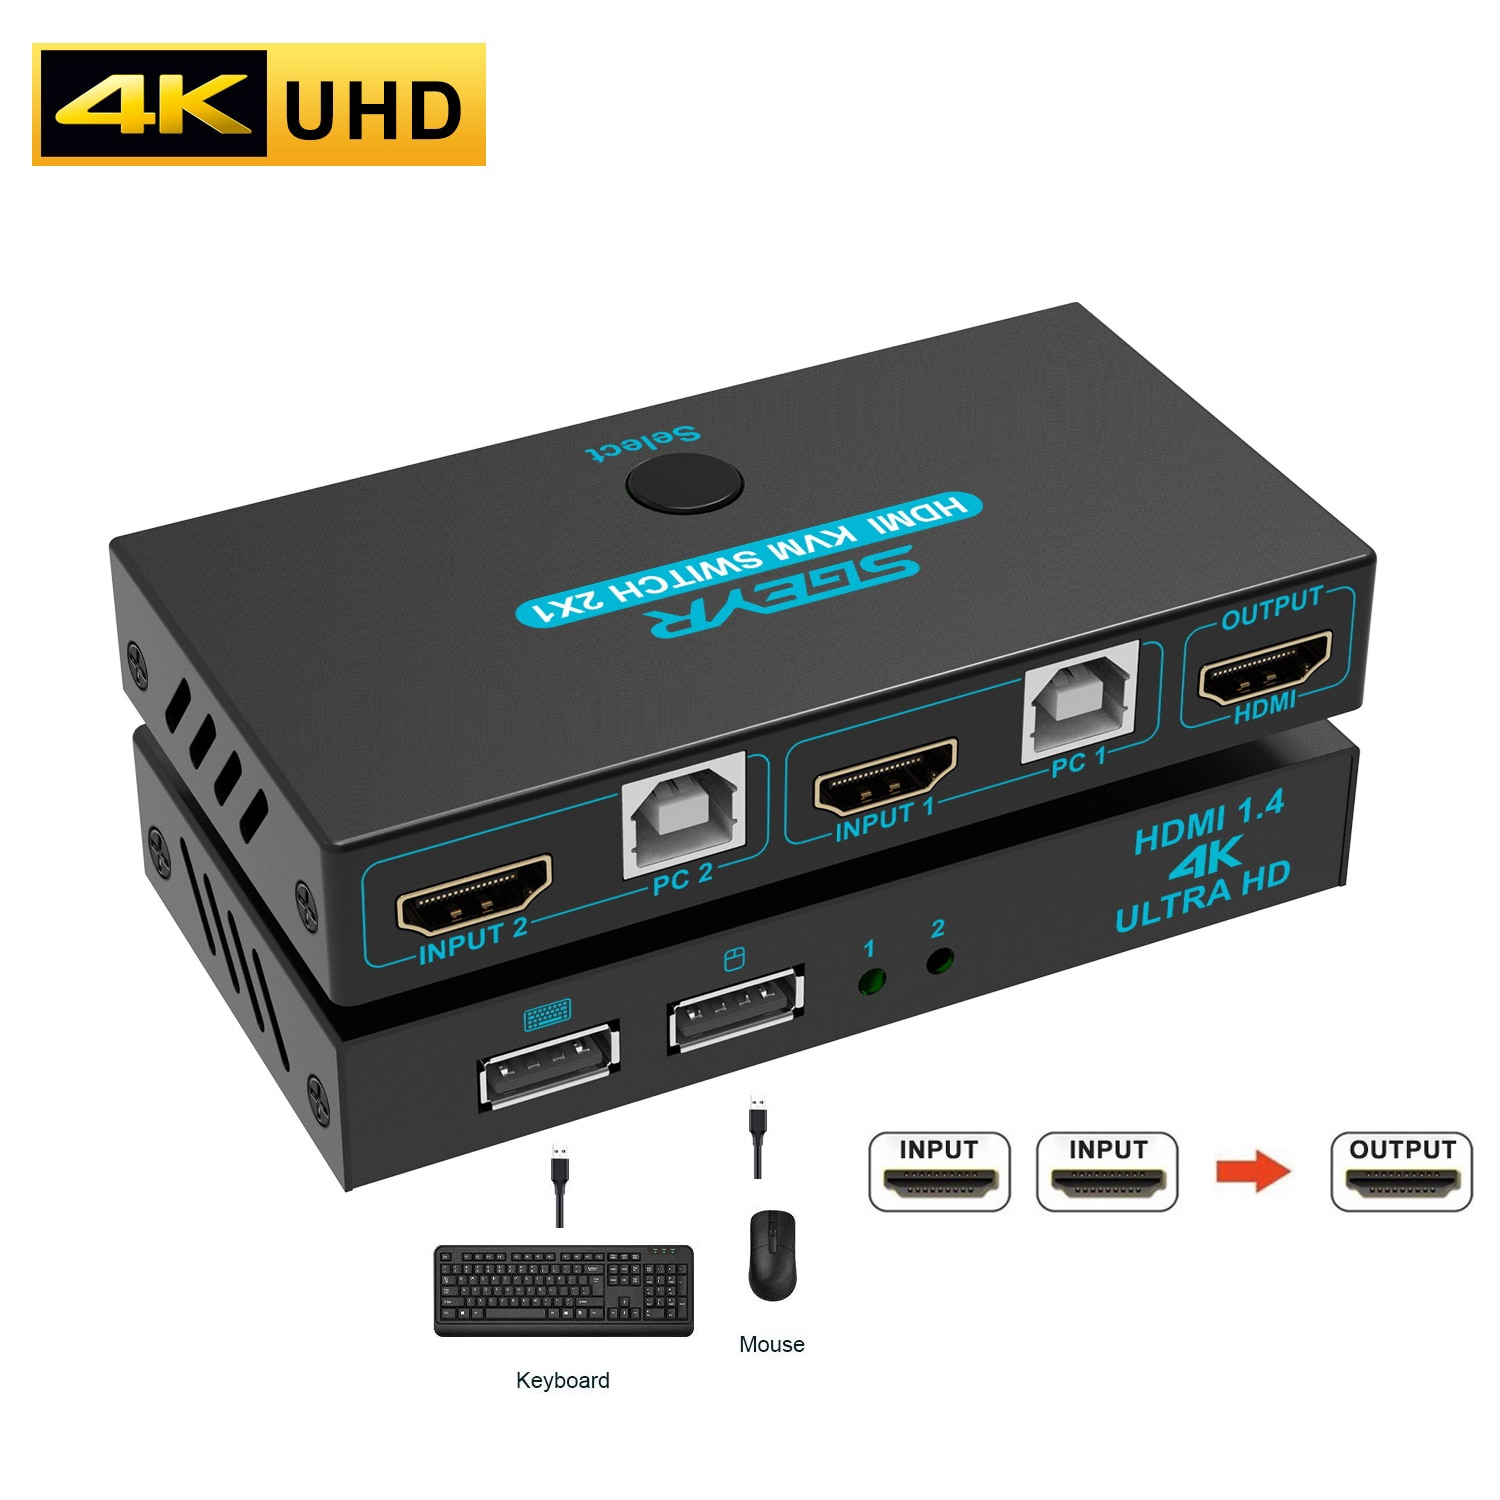 2x1 kvm switch box selector dvi switch 2 in 1 out sharing usb 2 0 monitor mouse keyboard for 2 computer laptop pc keyboard 4K HDMI KVM Switch USB KVM Switch Splitter 2 In 1 Out Box Video Display For 2 PC Sharing Keyboard Mouse Printer Play And Plug